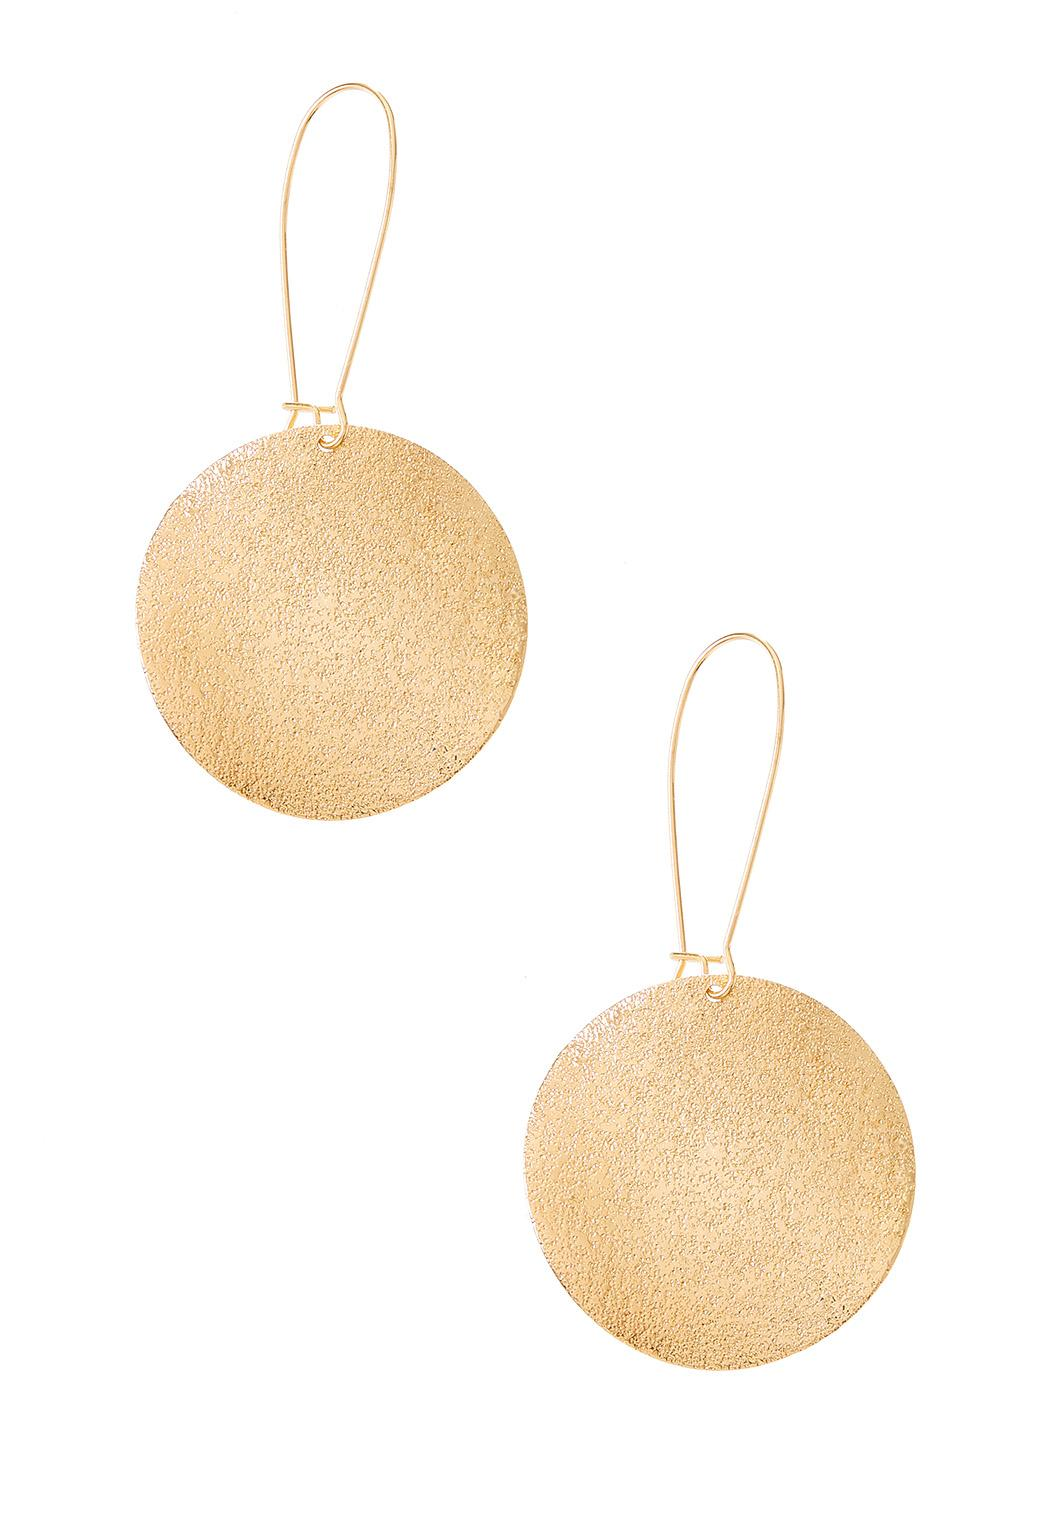 Textured Coin Earrings